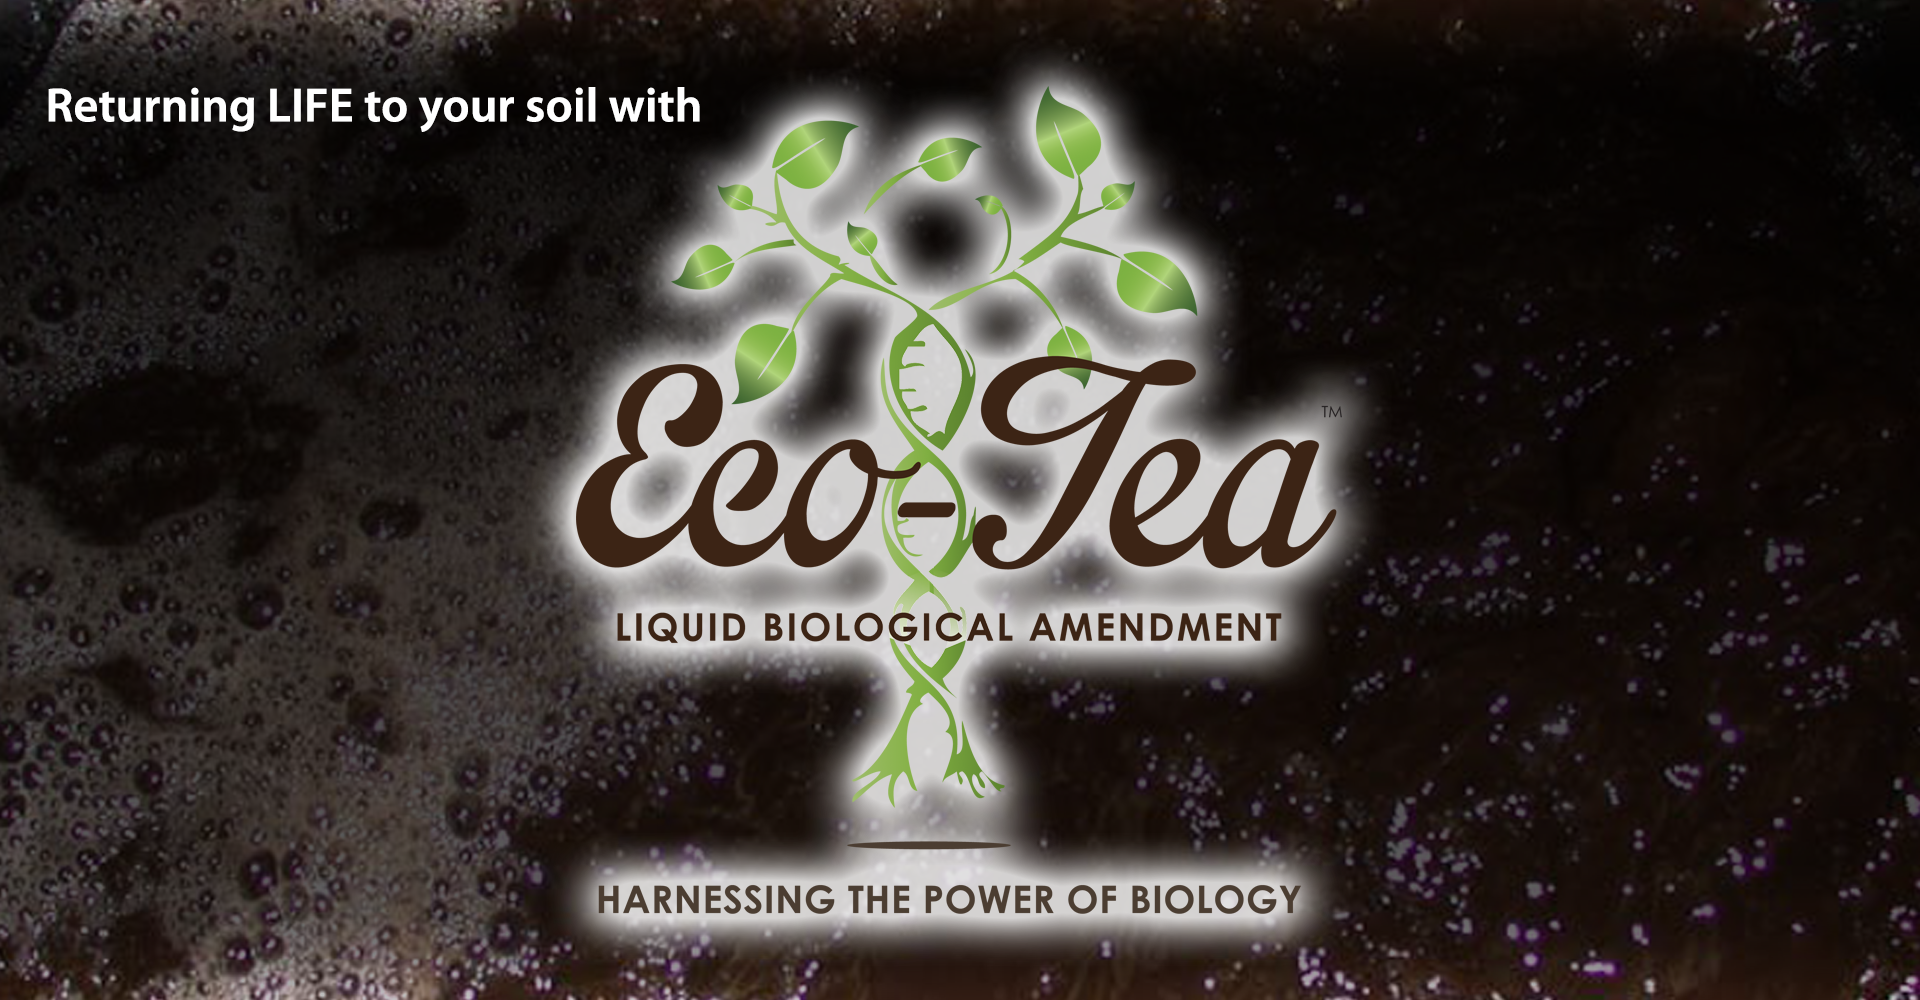 Eco-Tea - Returing Life To Your Soil